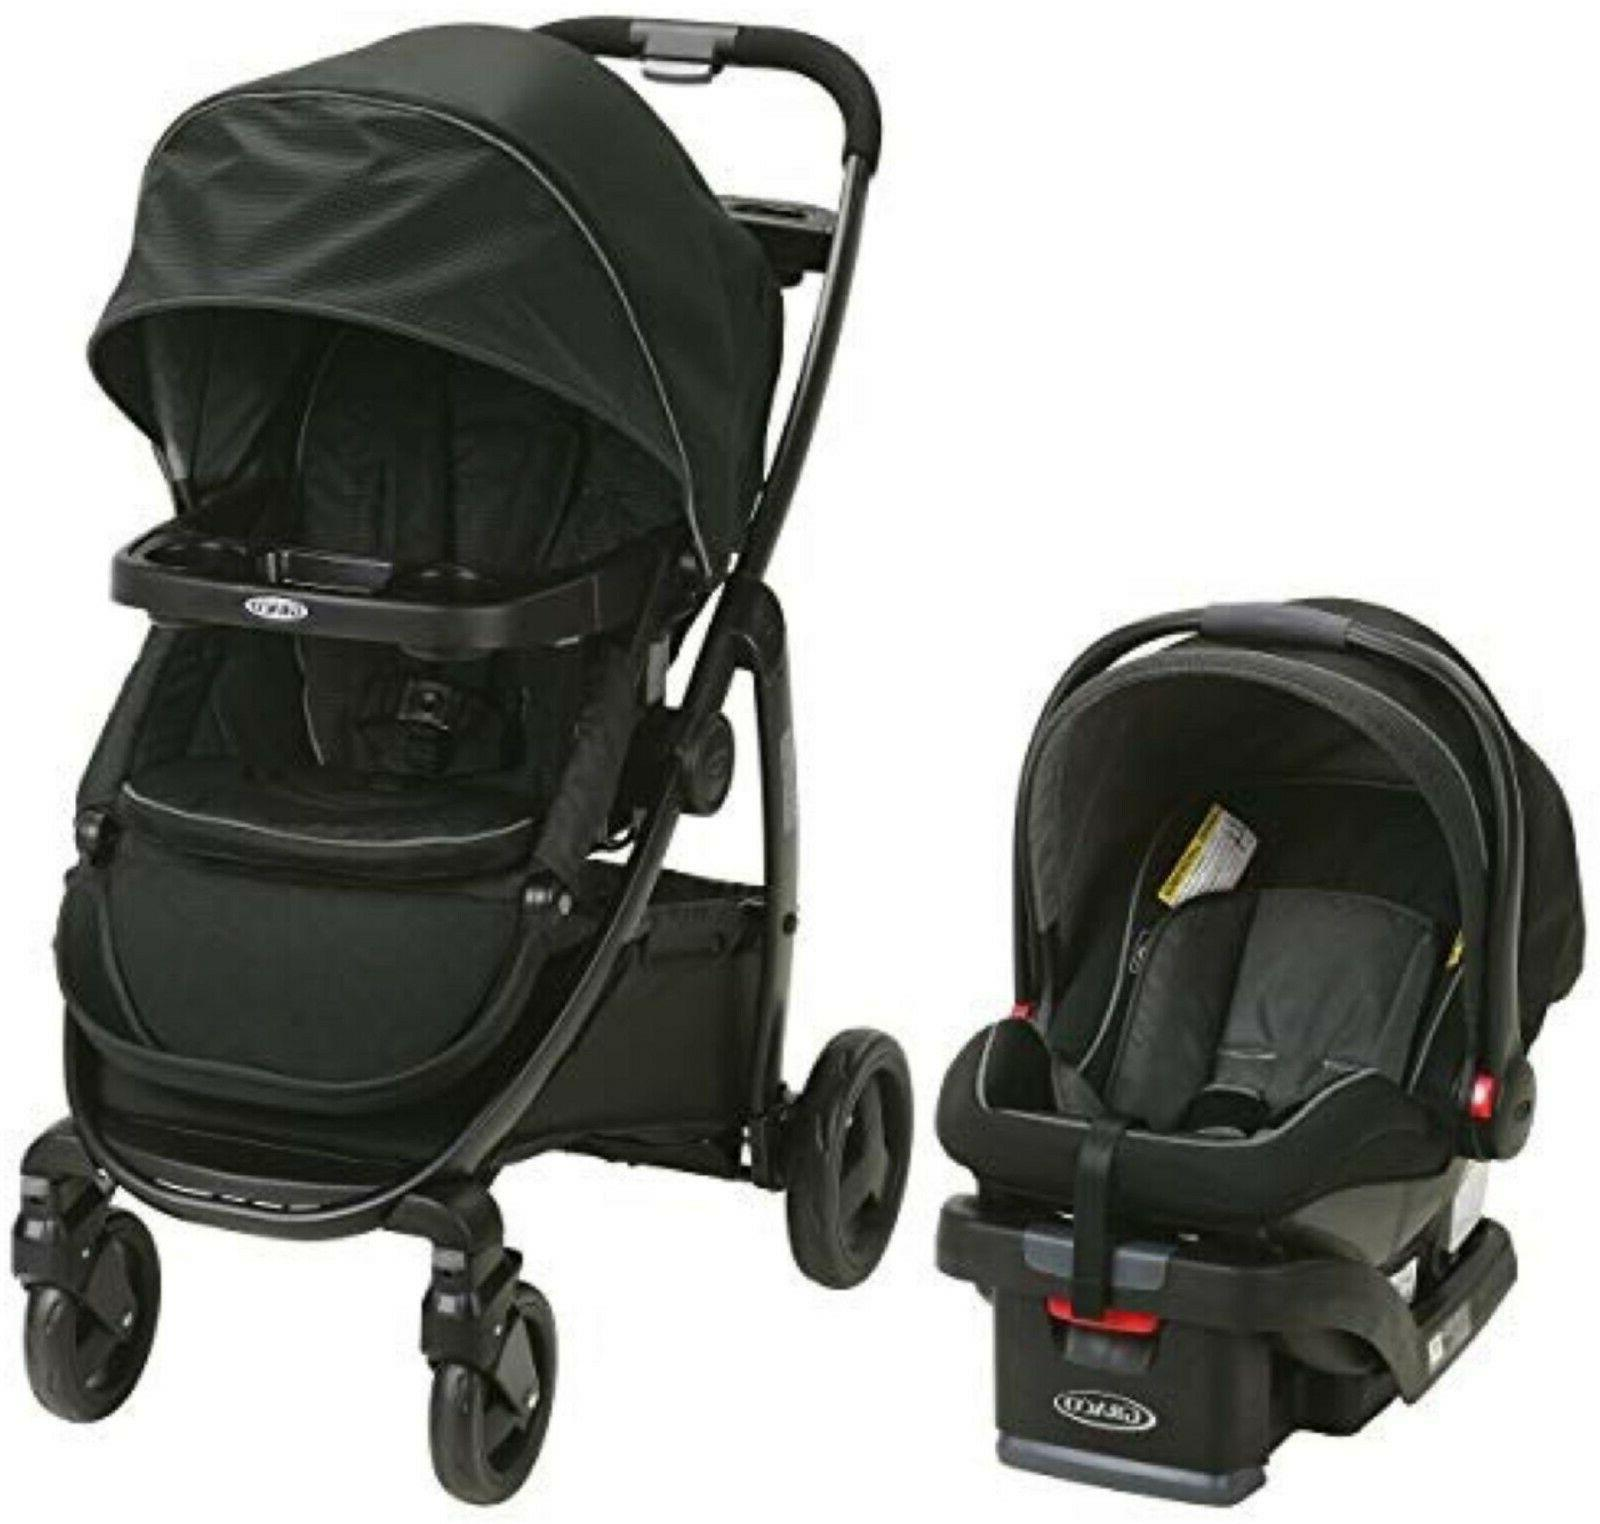 Graco 2048727 3 In 1 Travel System &